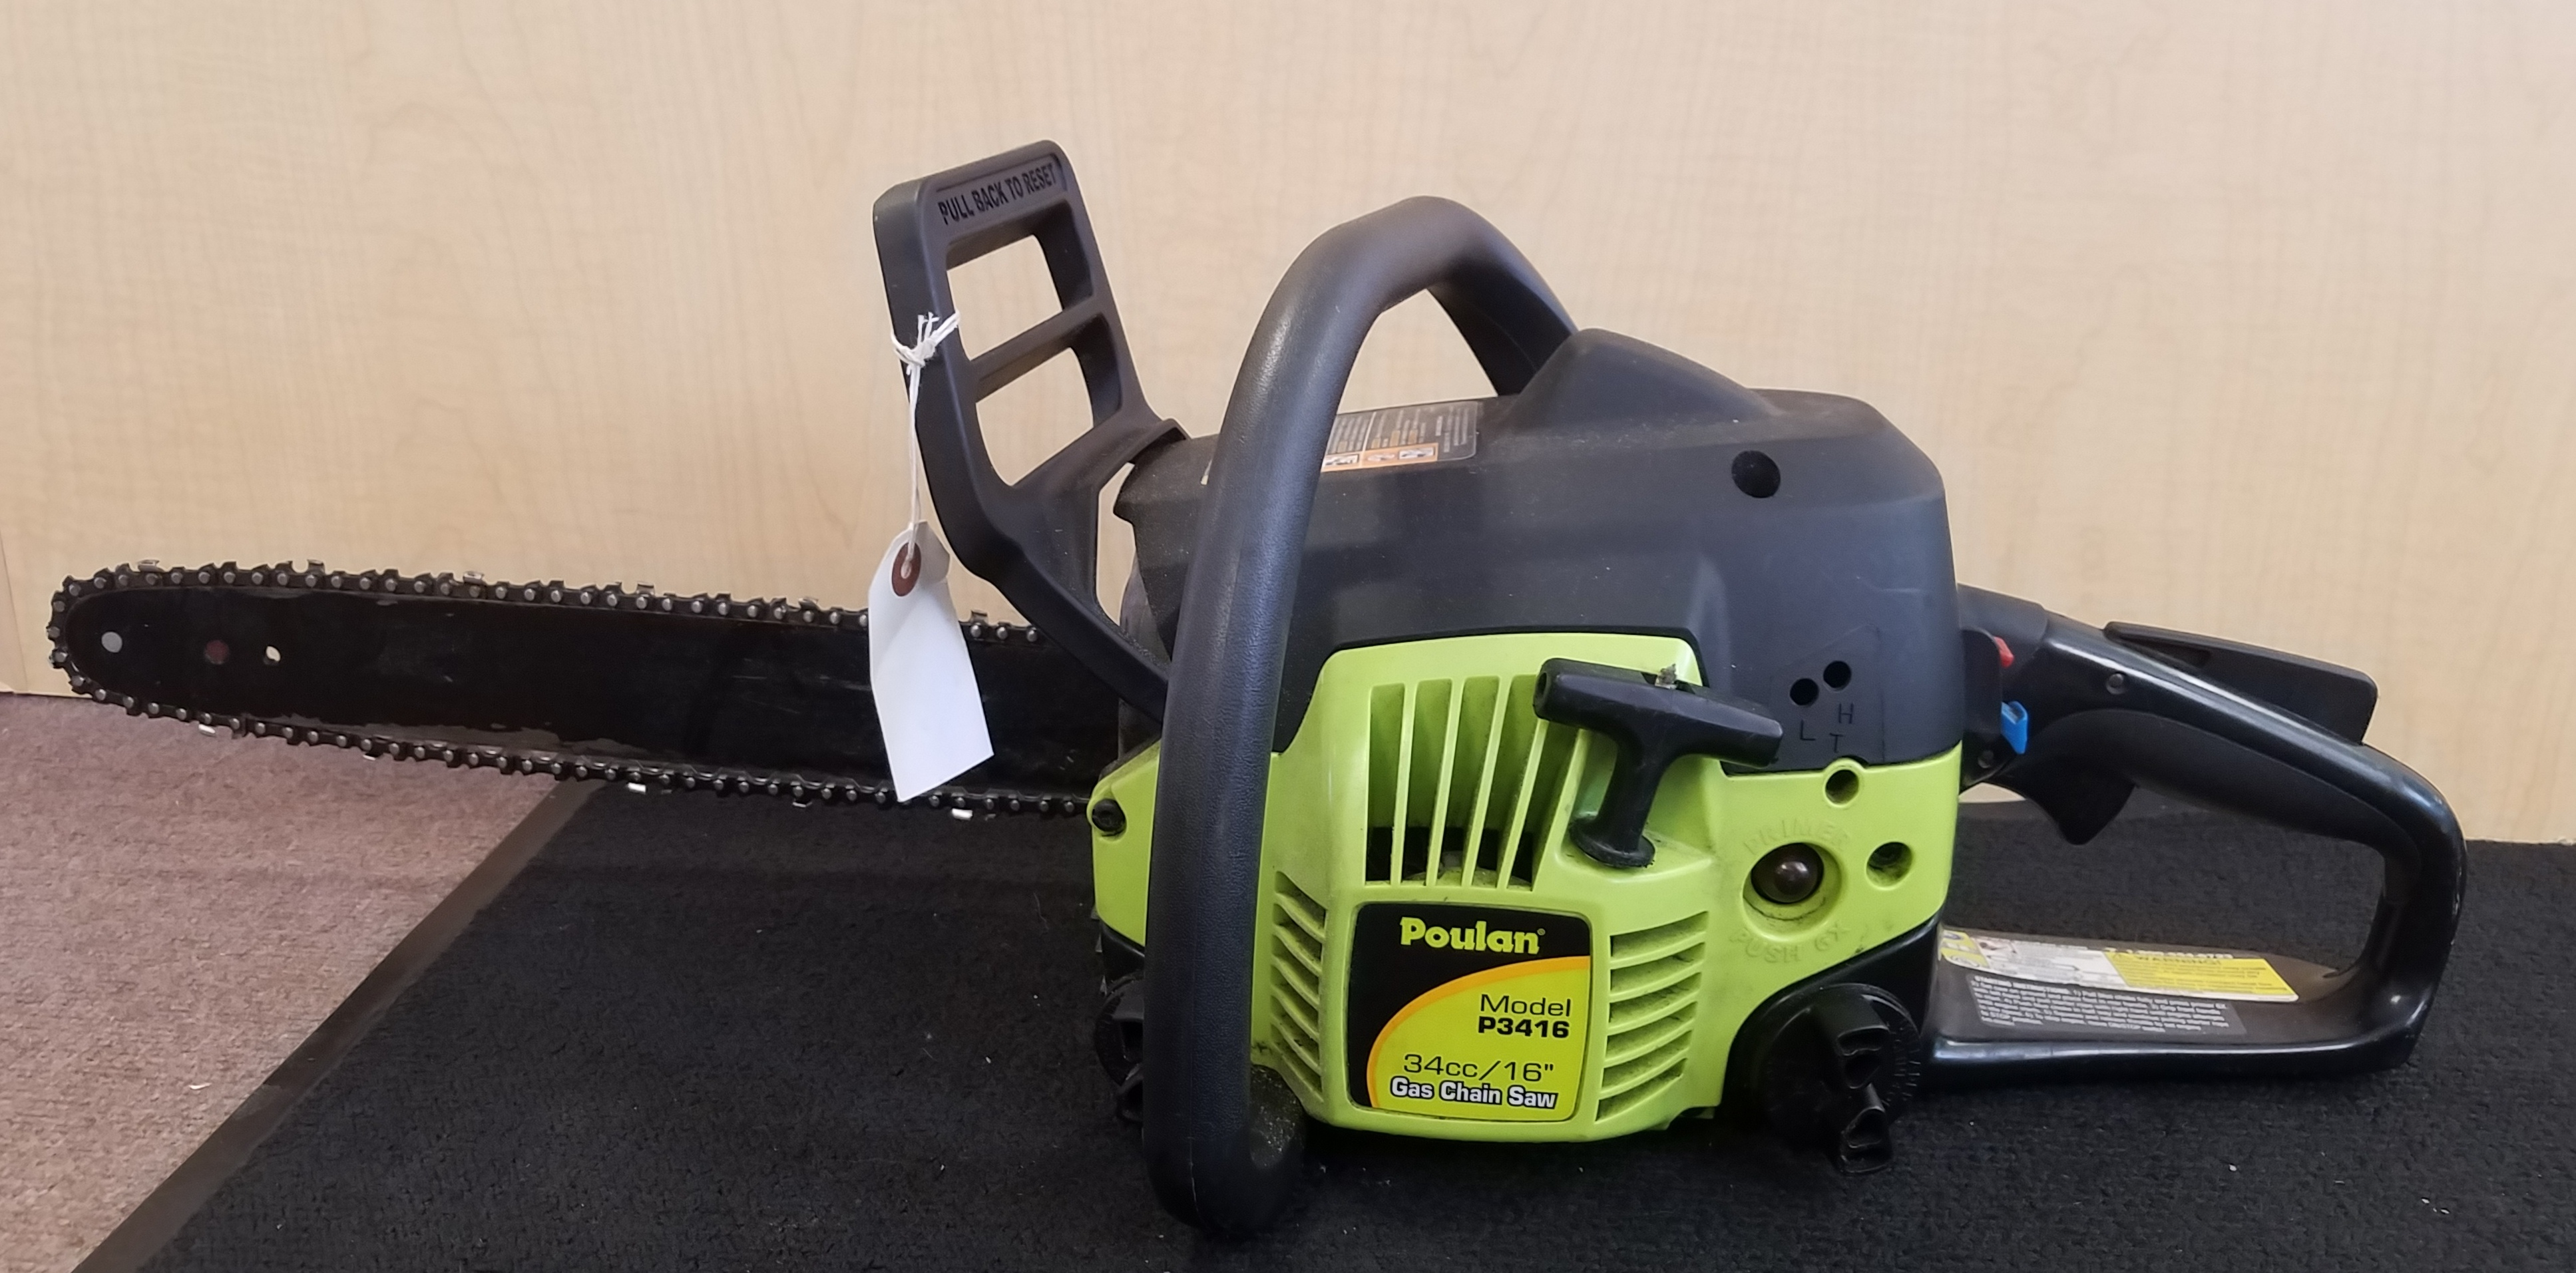 POULAN  P3416  CHAINSAW TOOLS-POWER